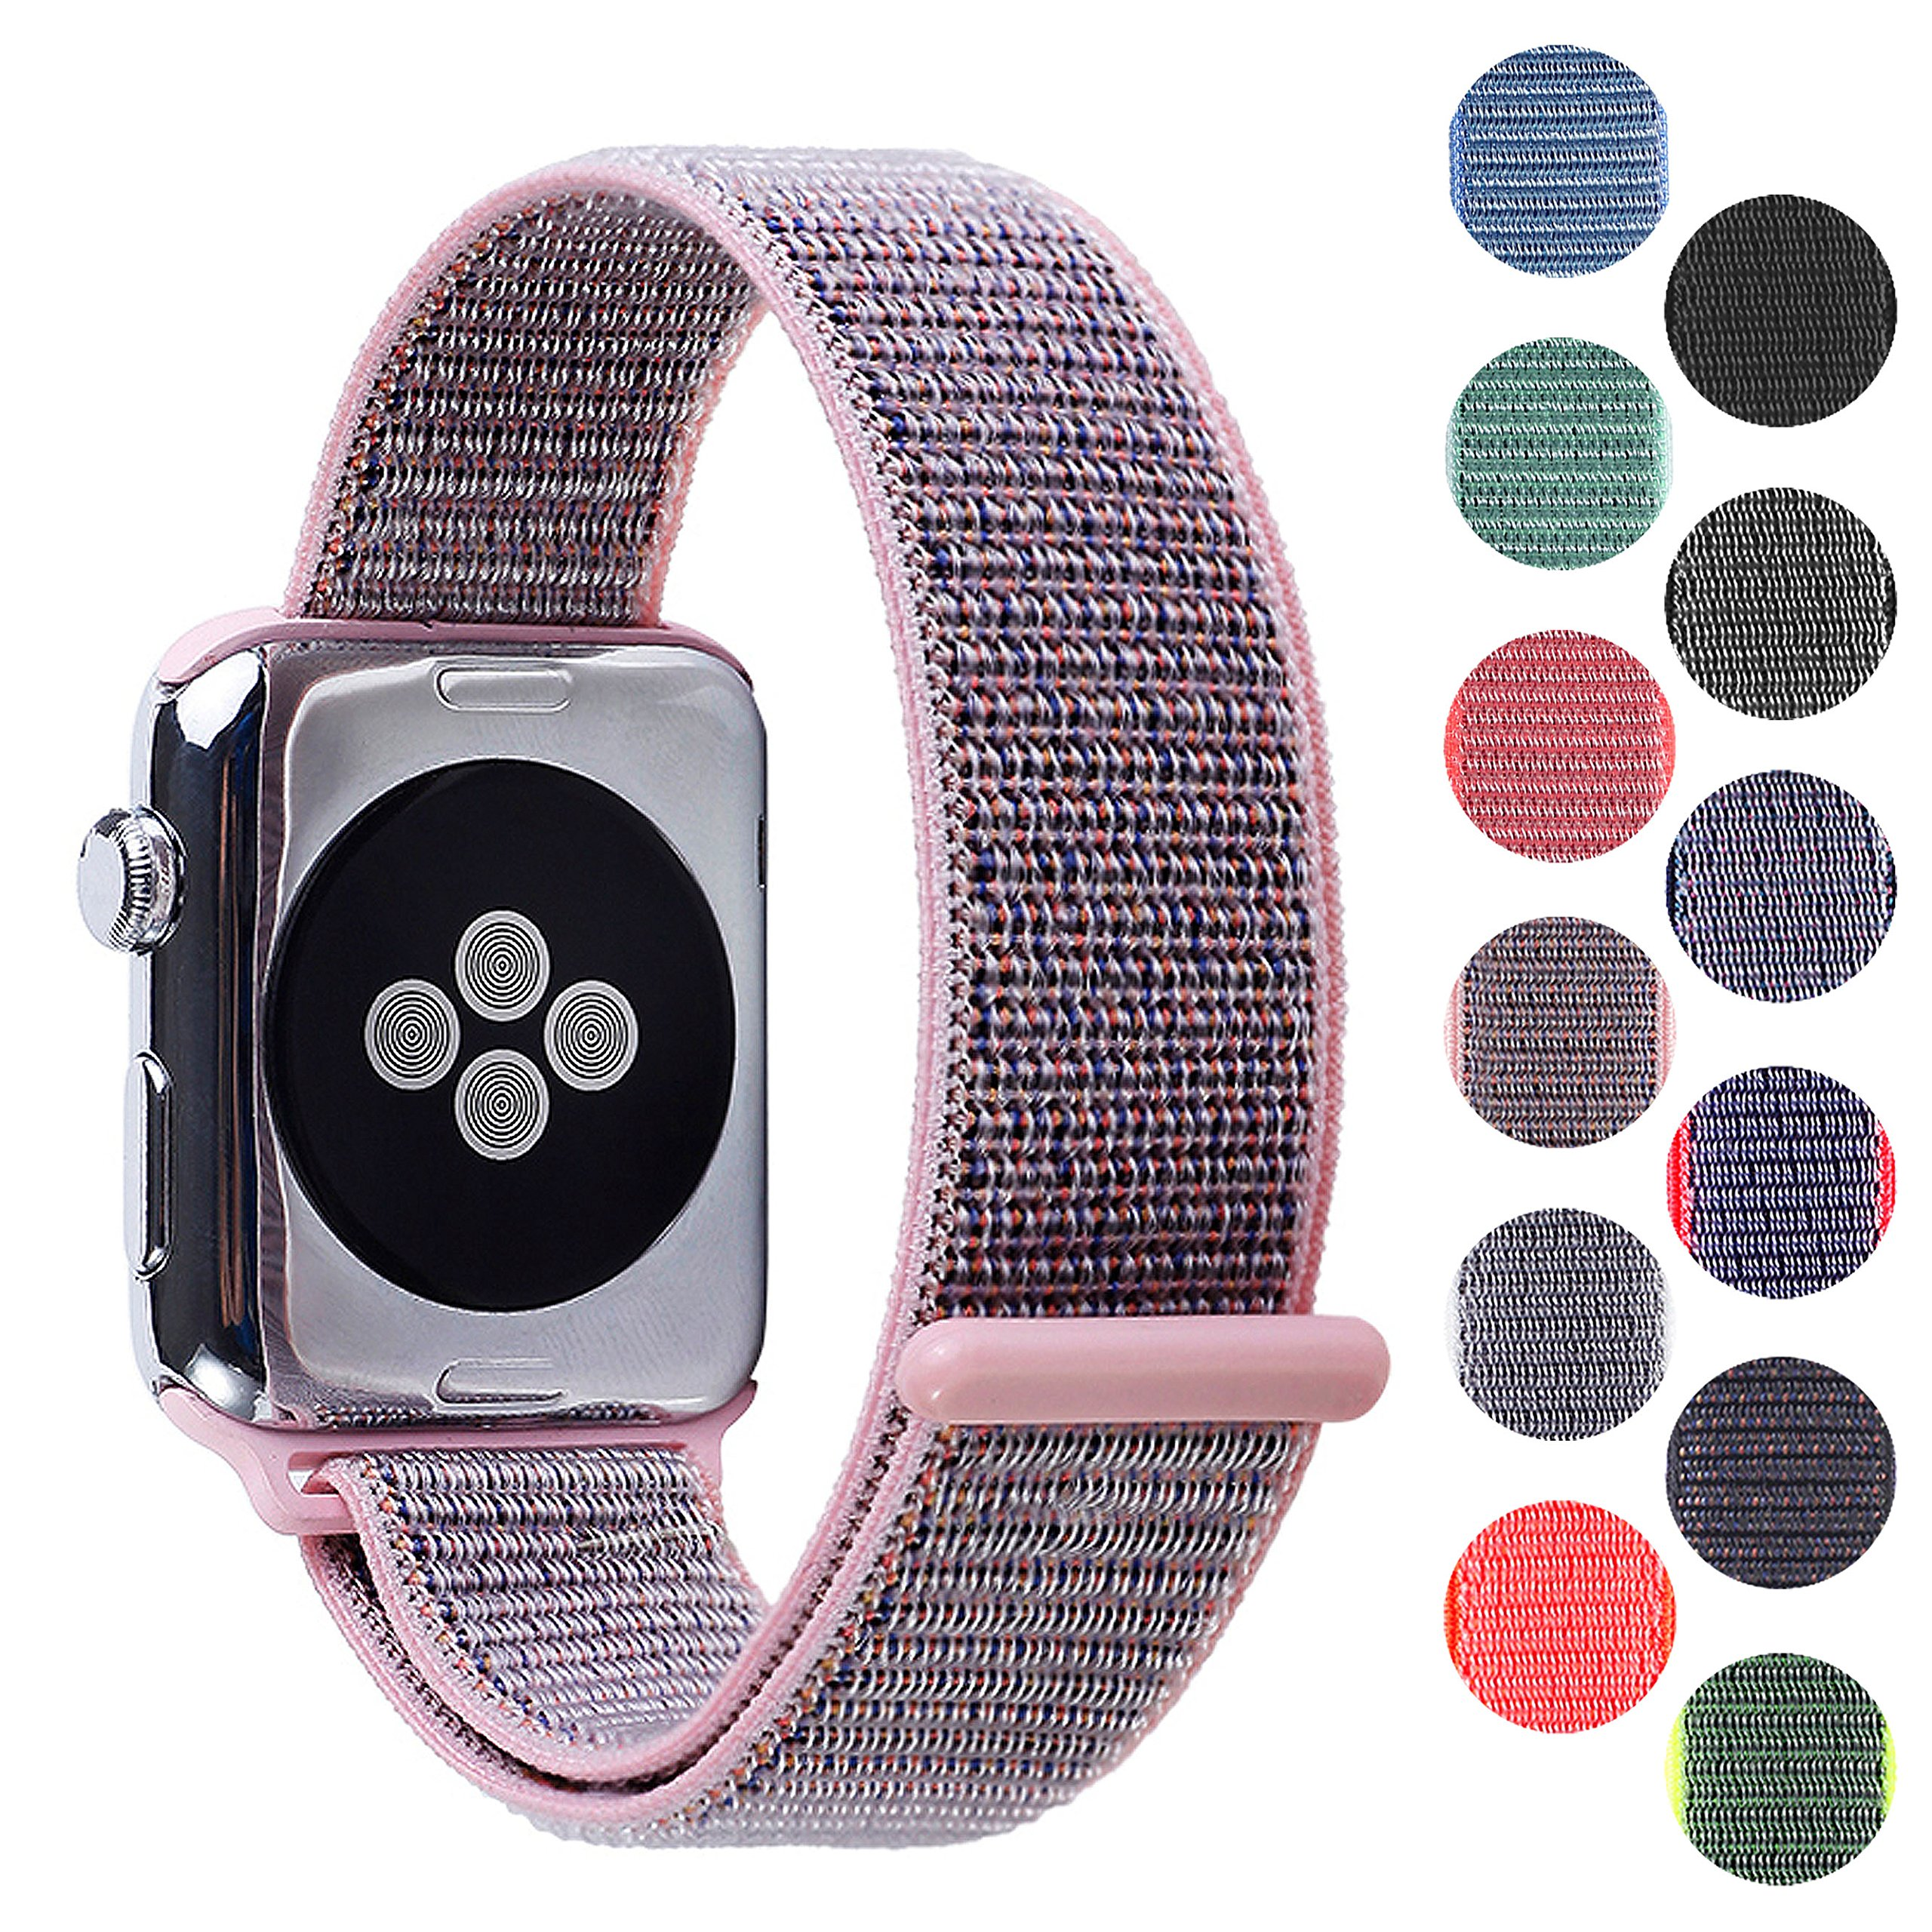 Pantheon Woven Nylon Replacement Apple Watch Band by, Sport Loop Edition, For Men or Women, Strap fits the 38mm or 42mm Apple iWatch, Compatible Series 1, 2, 3, Nike … (Light Pink, 38mm) by Pantheon (Image #1)